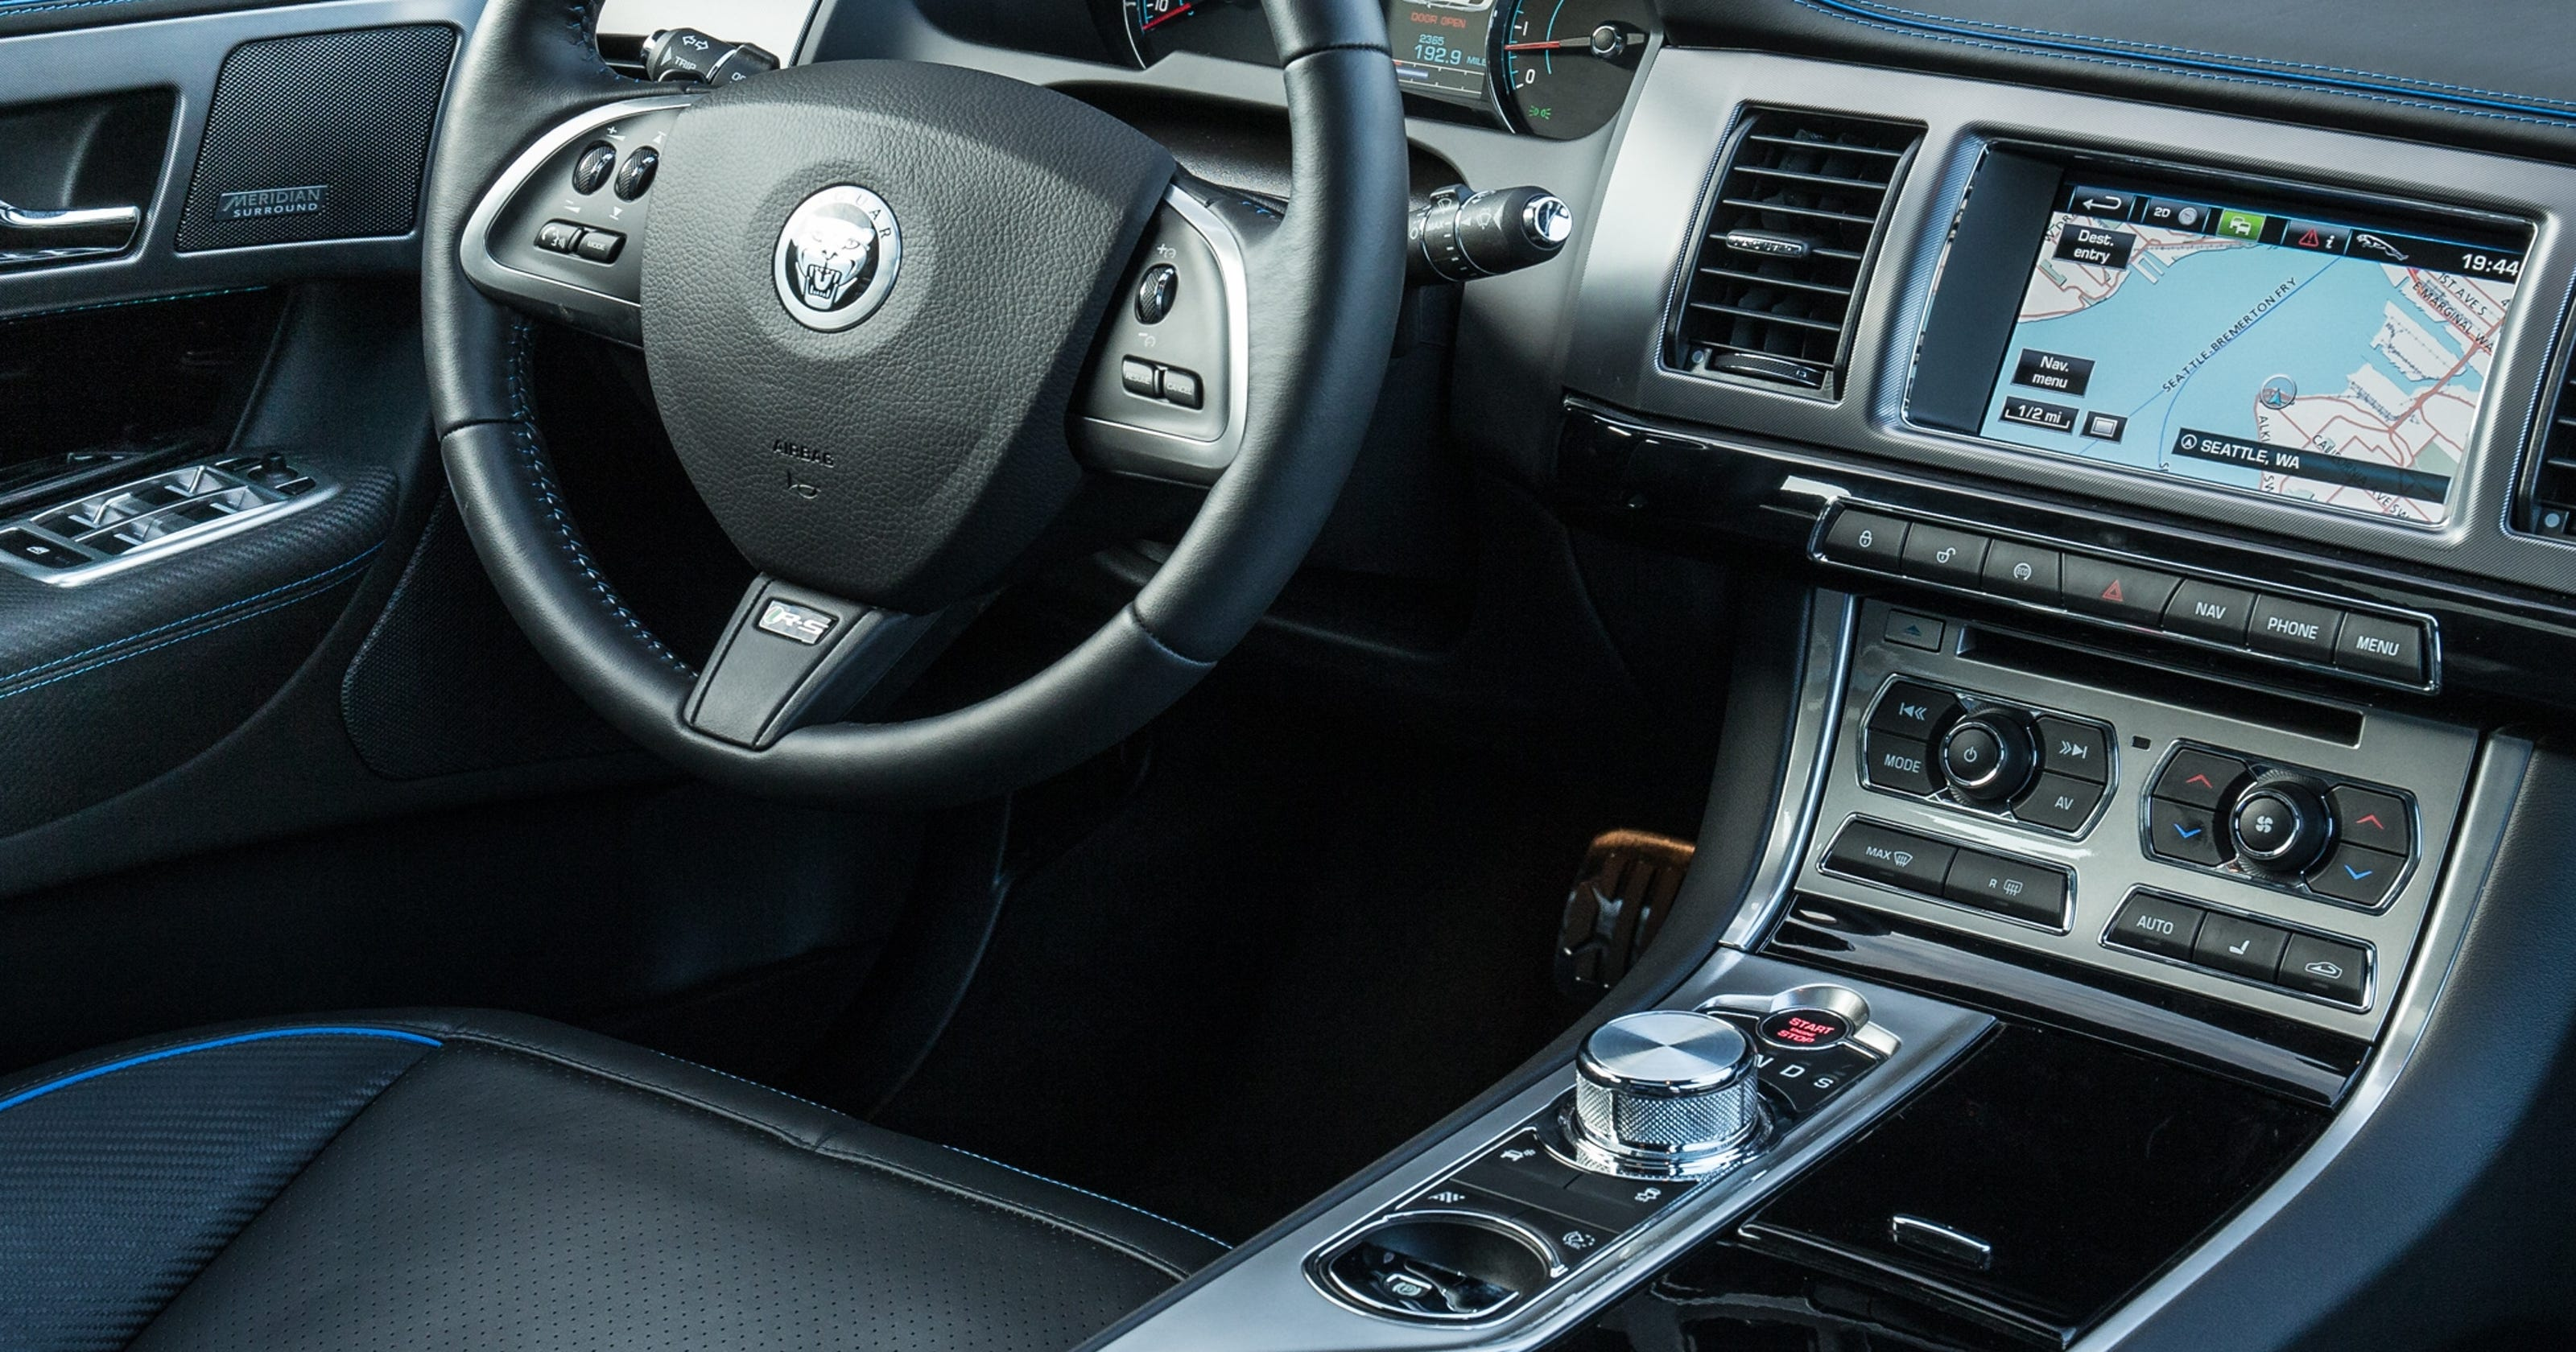 Among bells and whistles, cars shift to buttons, knobs